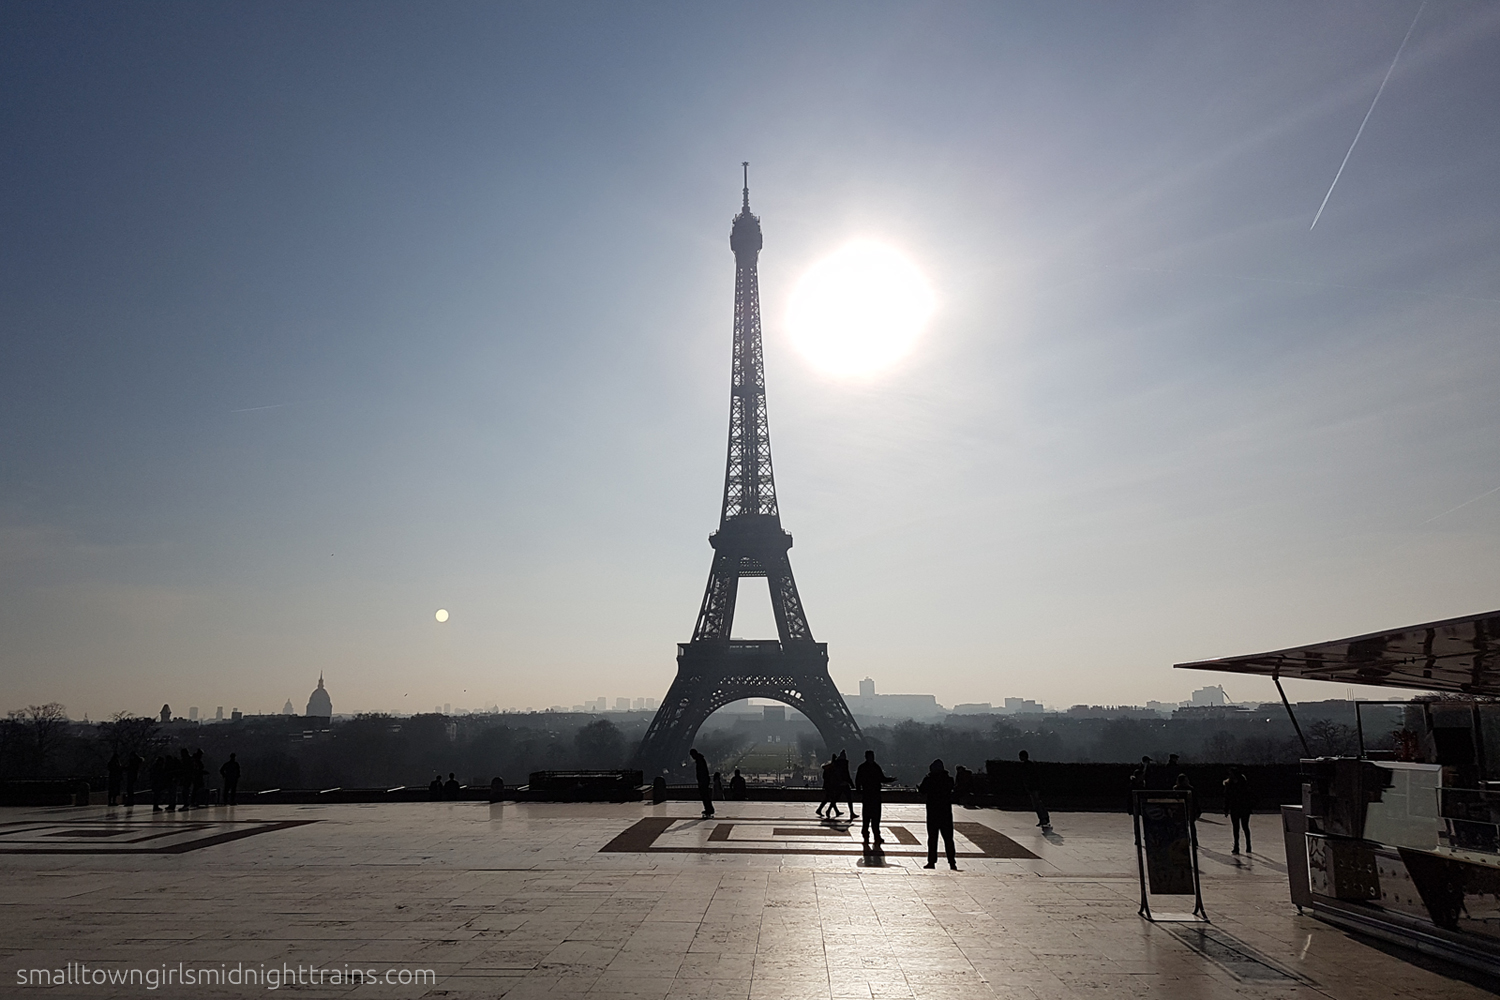 The Eiffel Tower: You Never Forget Your First(s)